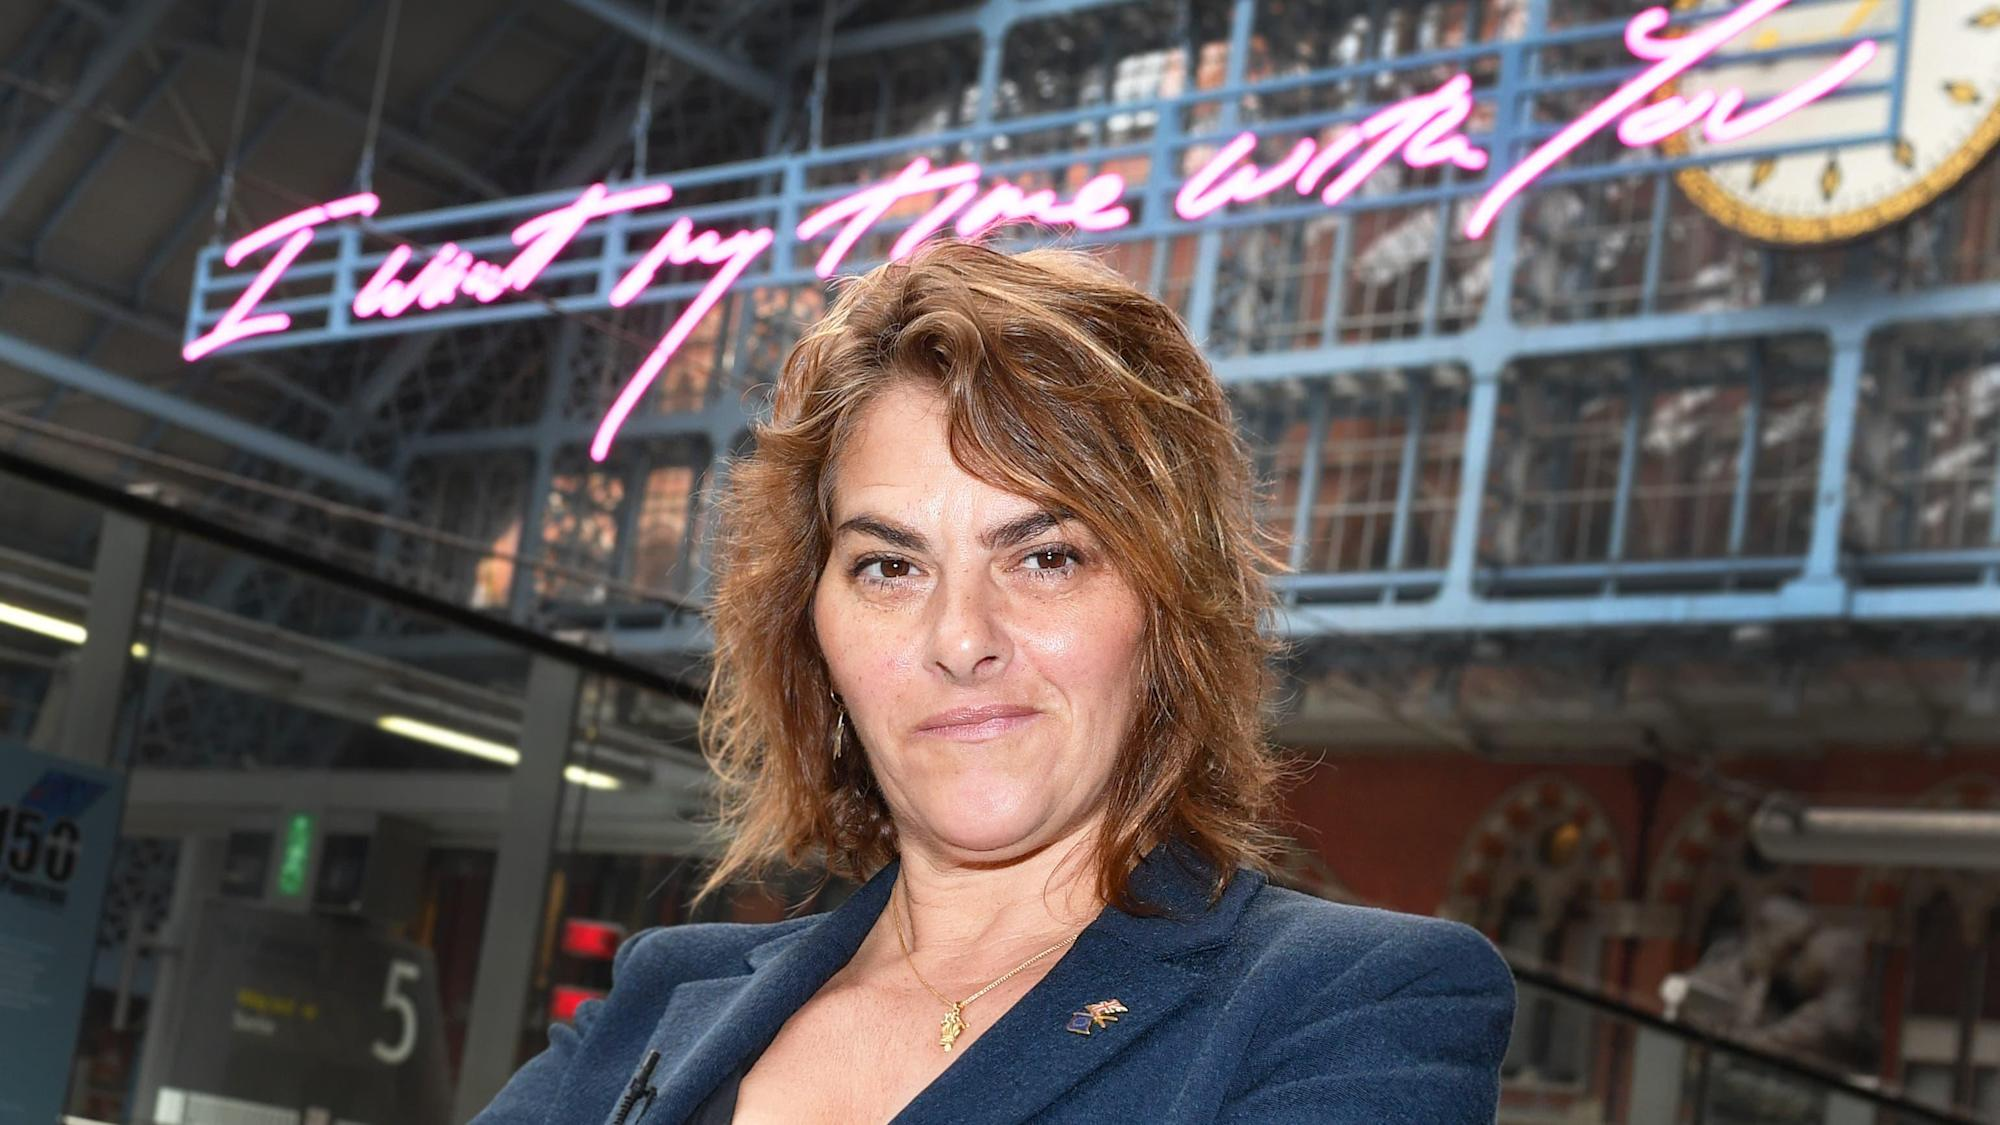 Tracey Emin 'a bit envious' of revellers at Liverpool pilot concert